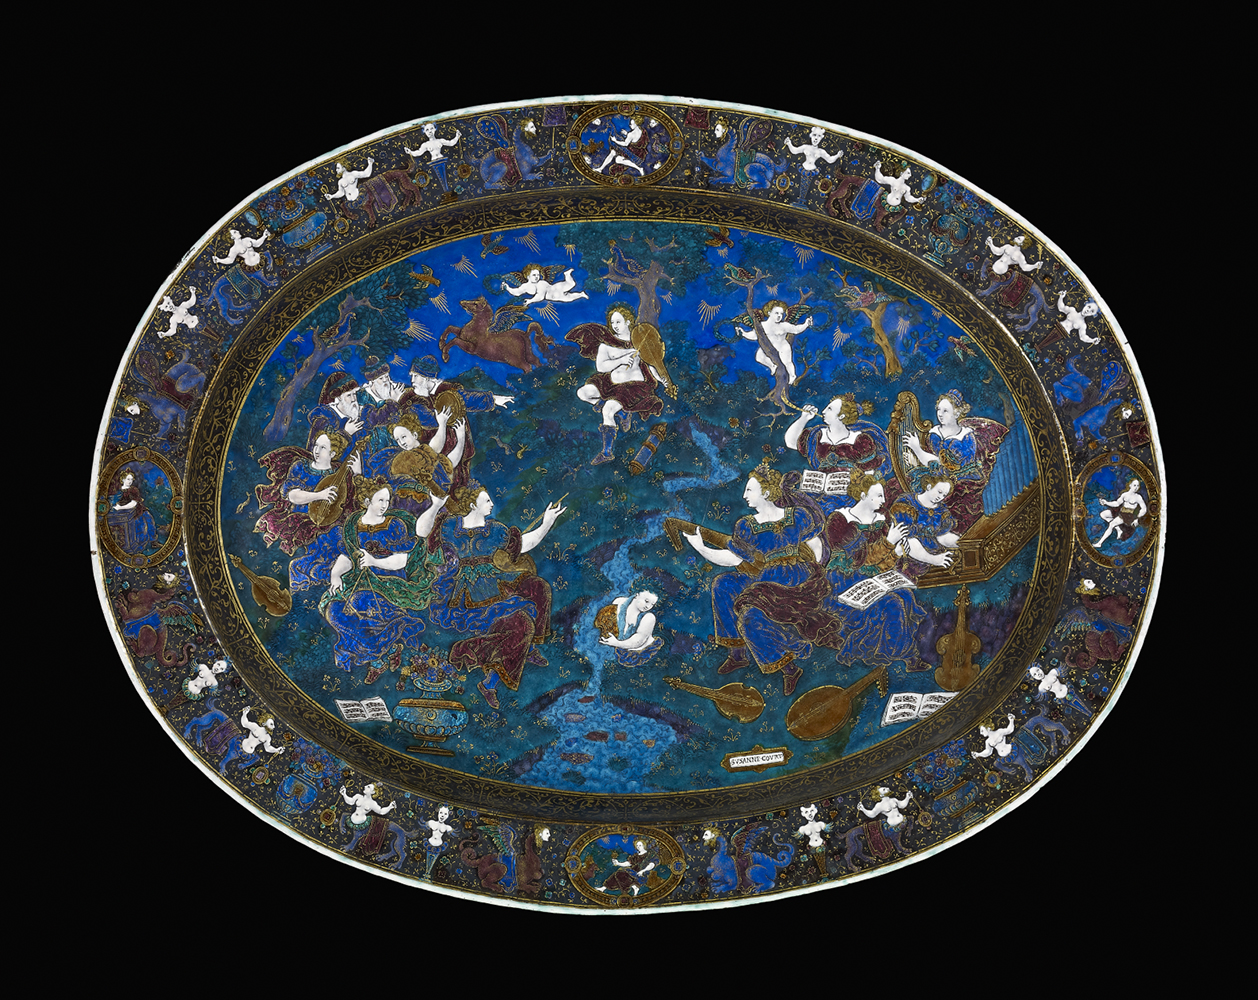 Apollo and the Muses on Mount Helicon. Painted enamel on copper with gilding. Limoges, France, around 1600.